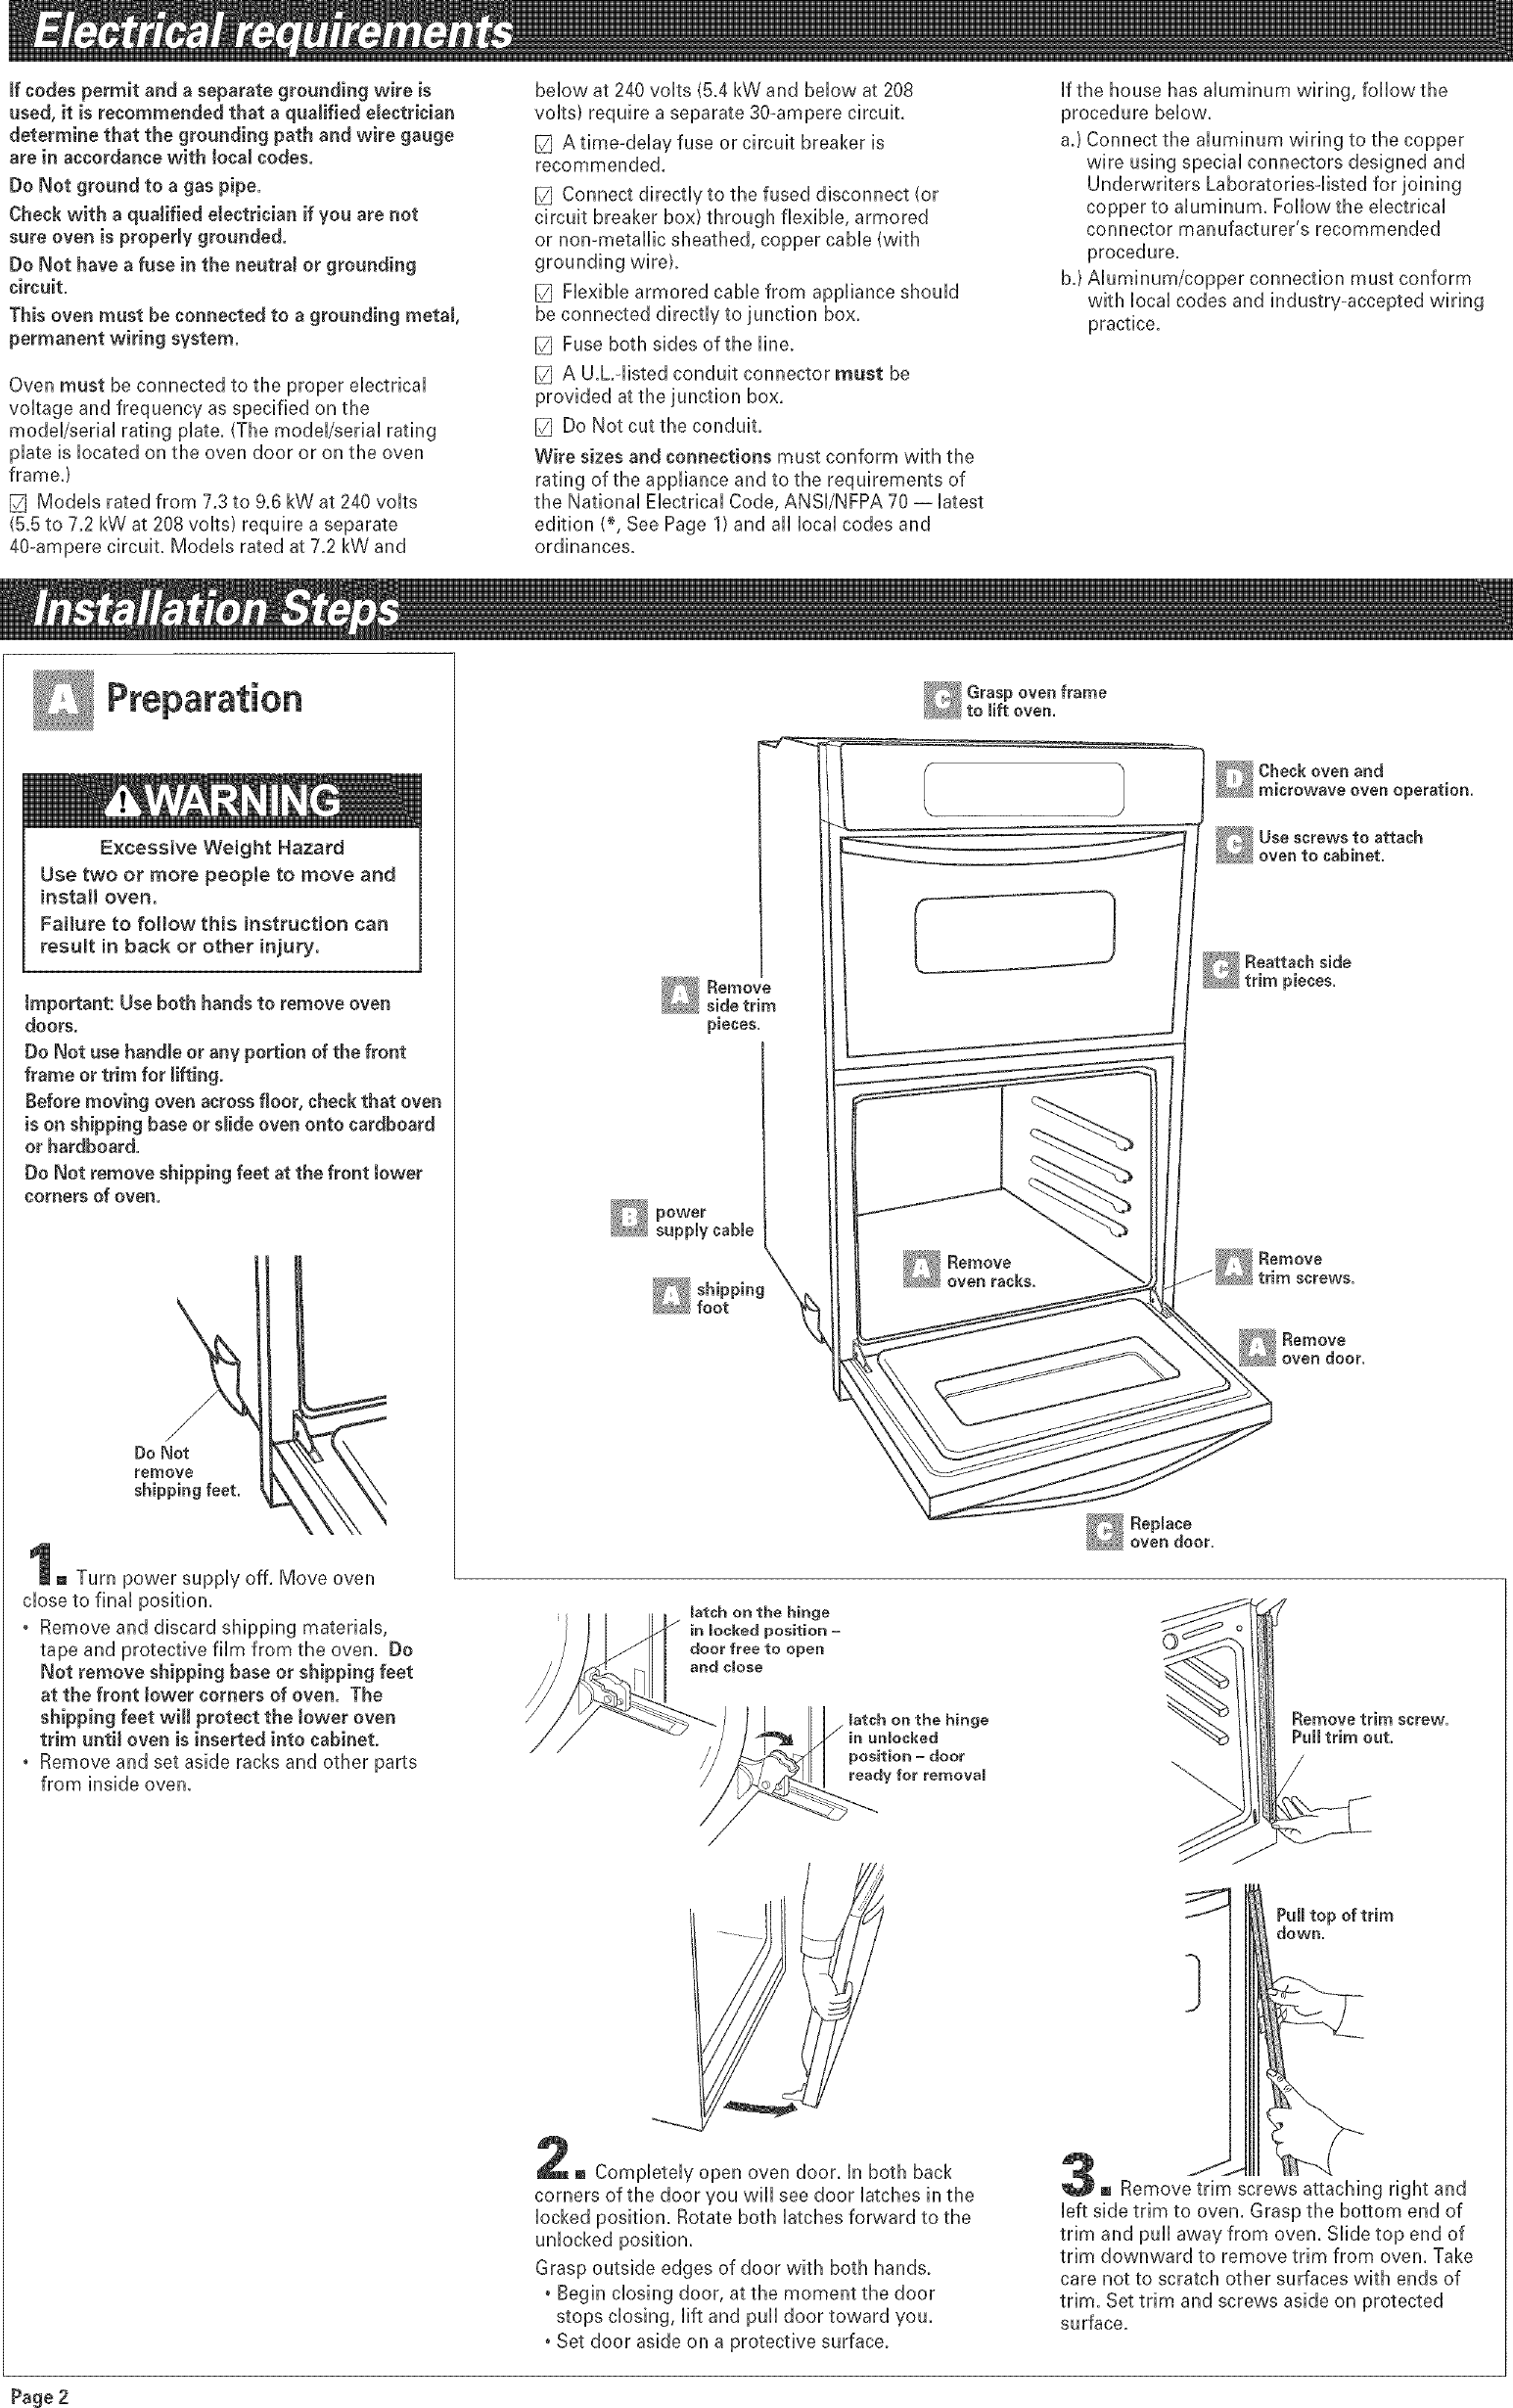 Whirlpool Built In Oven Electric With Microwave Manual L0409230 Parts Gas Dryer Diagram Page 3 Of 5